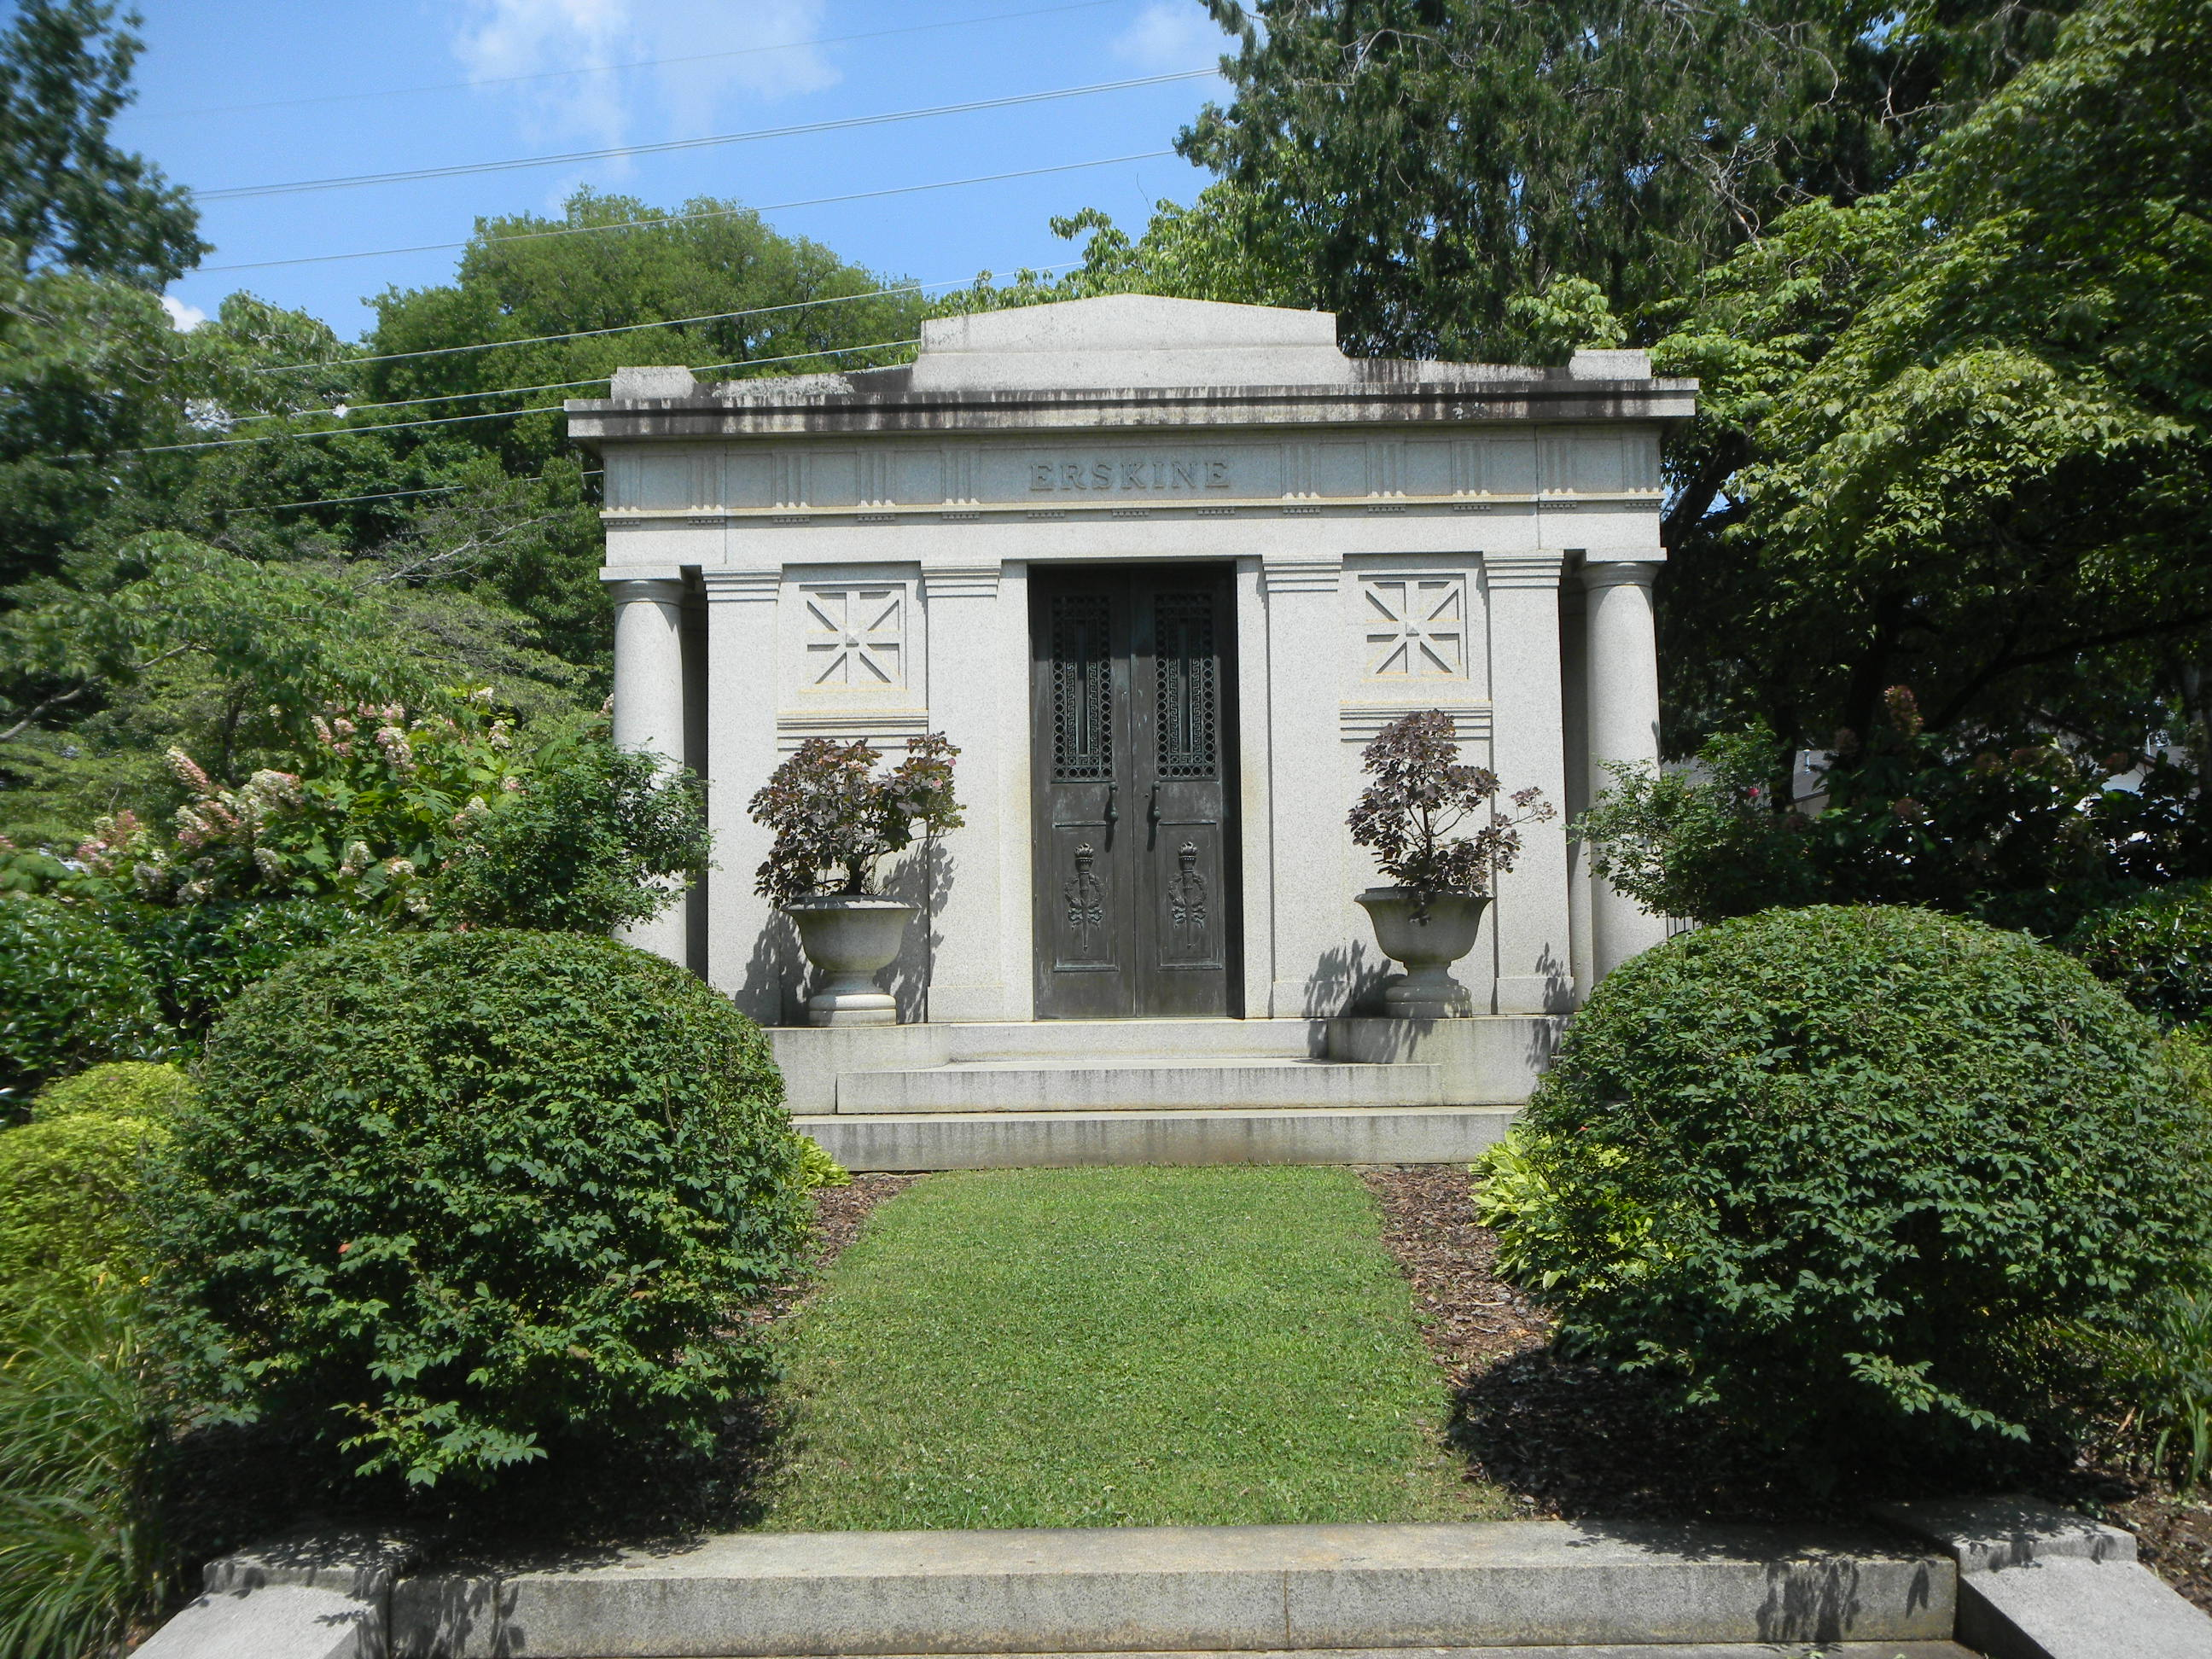 The mausoleum where Albert Russel Erskine is buried together with his wife and parents at the Maple Hill Cemetery